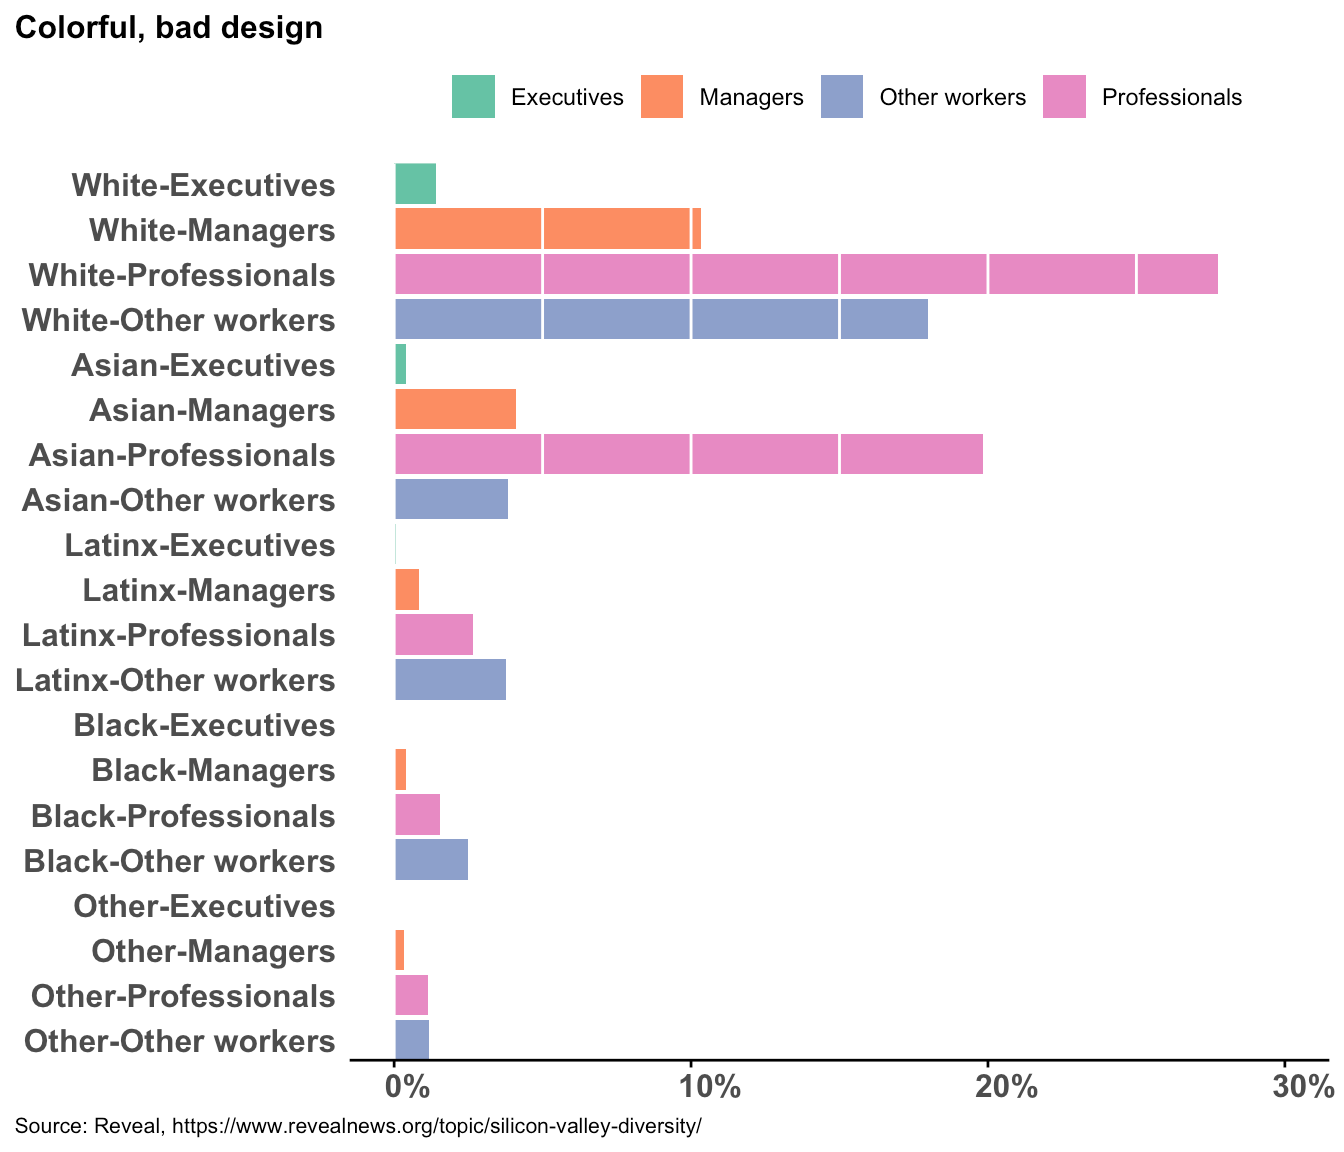 A bar chart showing ethnicities/races and job categories of employees in Silicon Valley companies